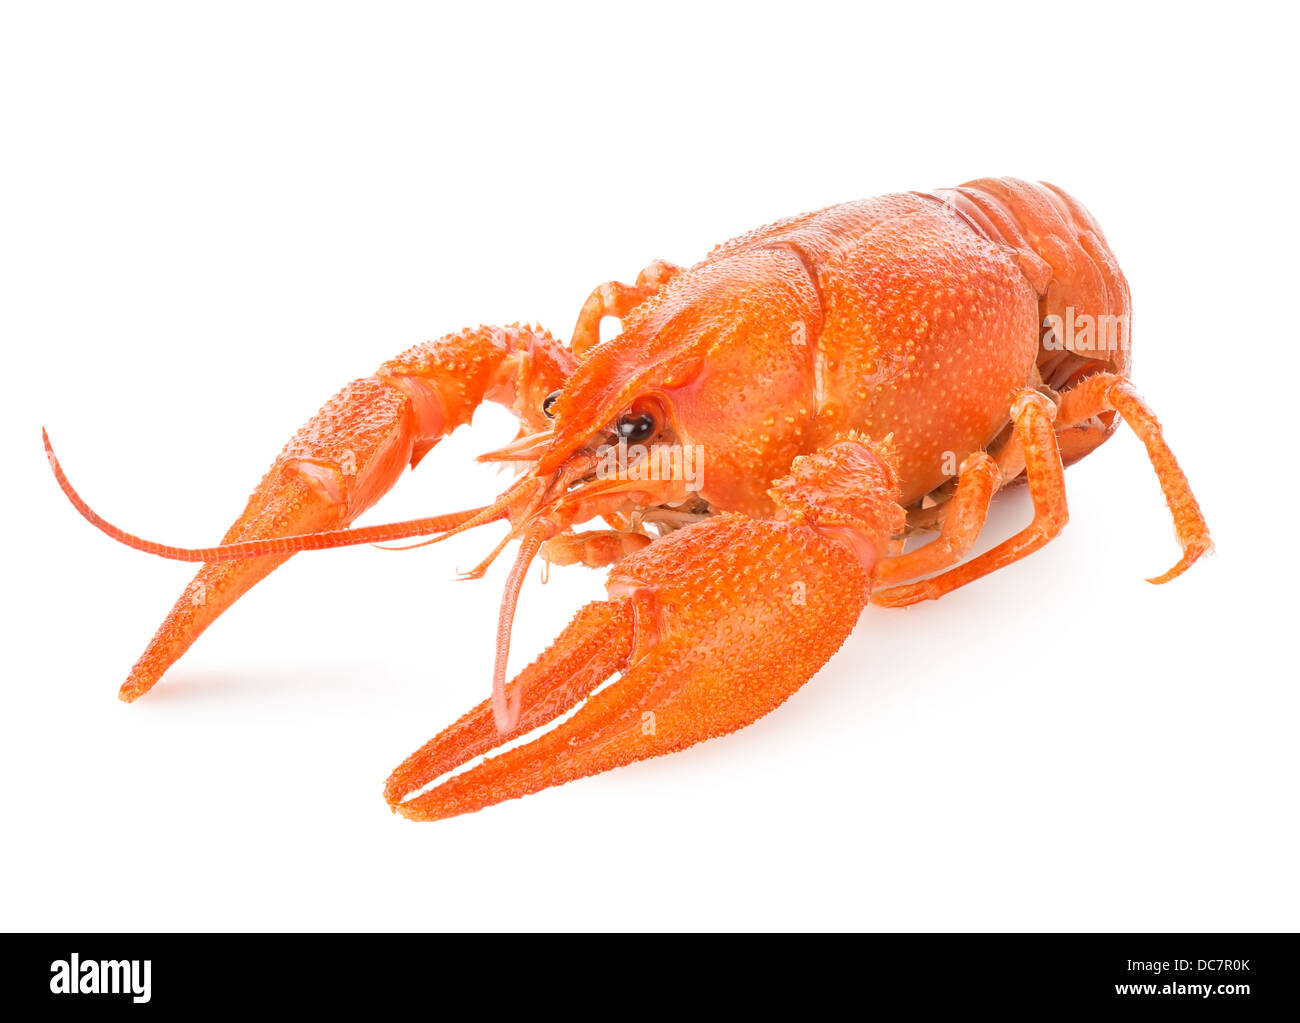 Red lobster isolated on a white background - Stock Image